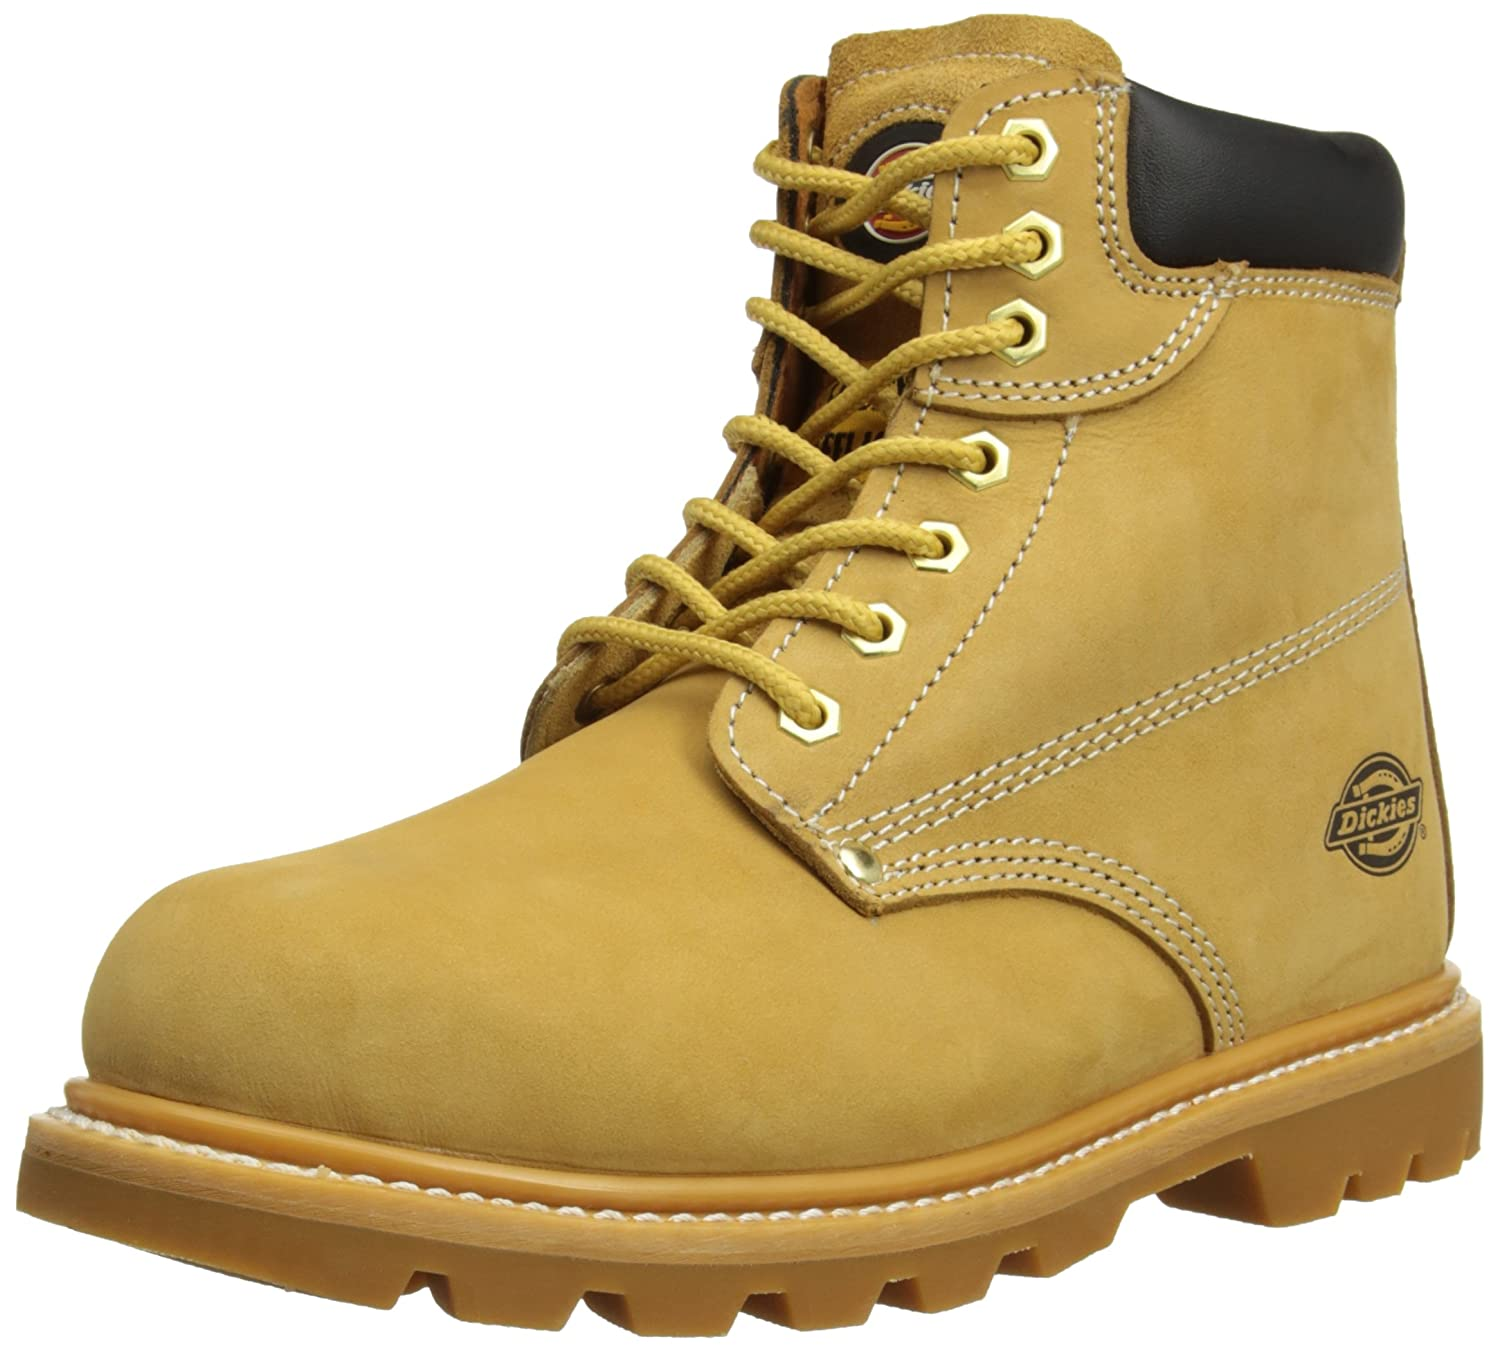 TALLA 43 EU (9 UK). Dickies FA23200 Botas, Beige, EU/UK